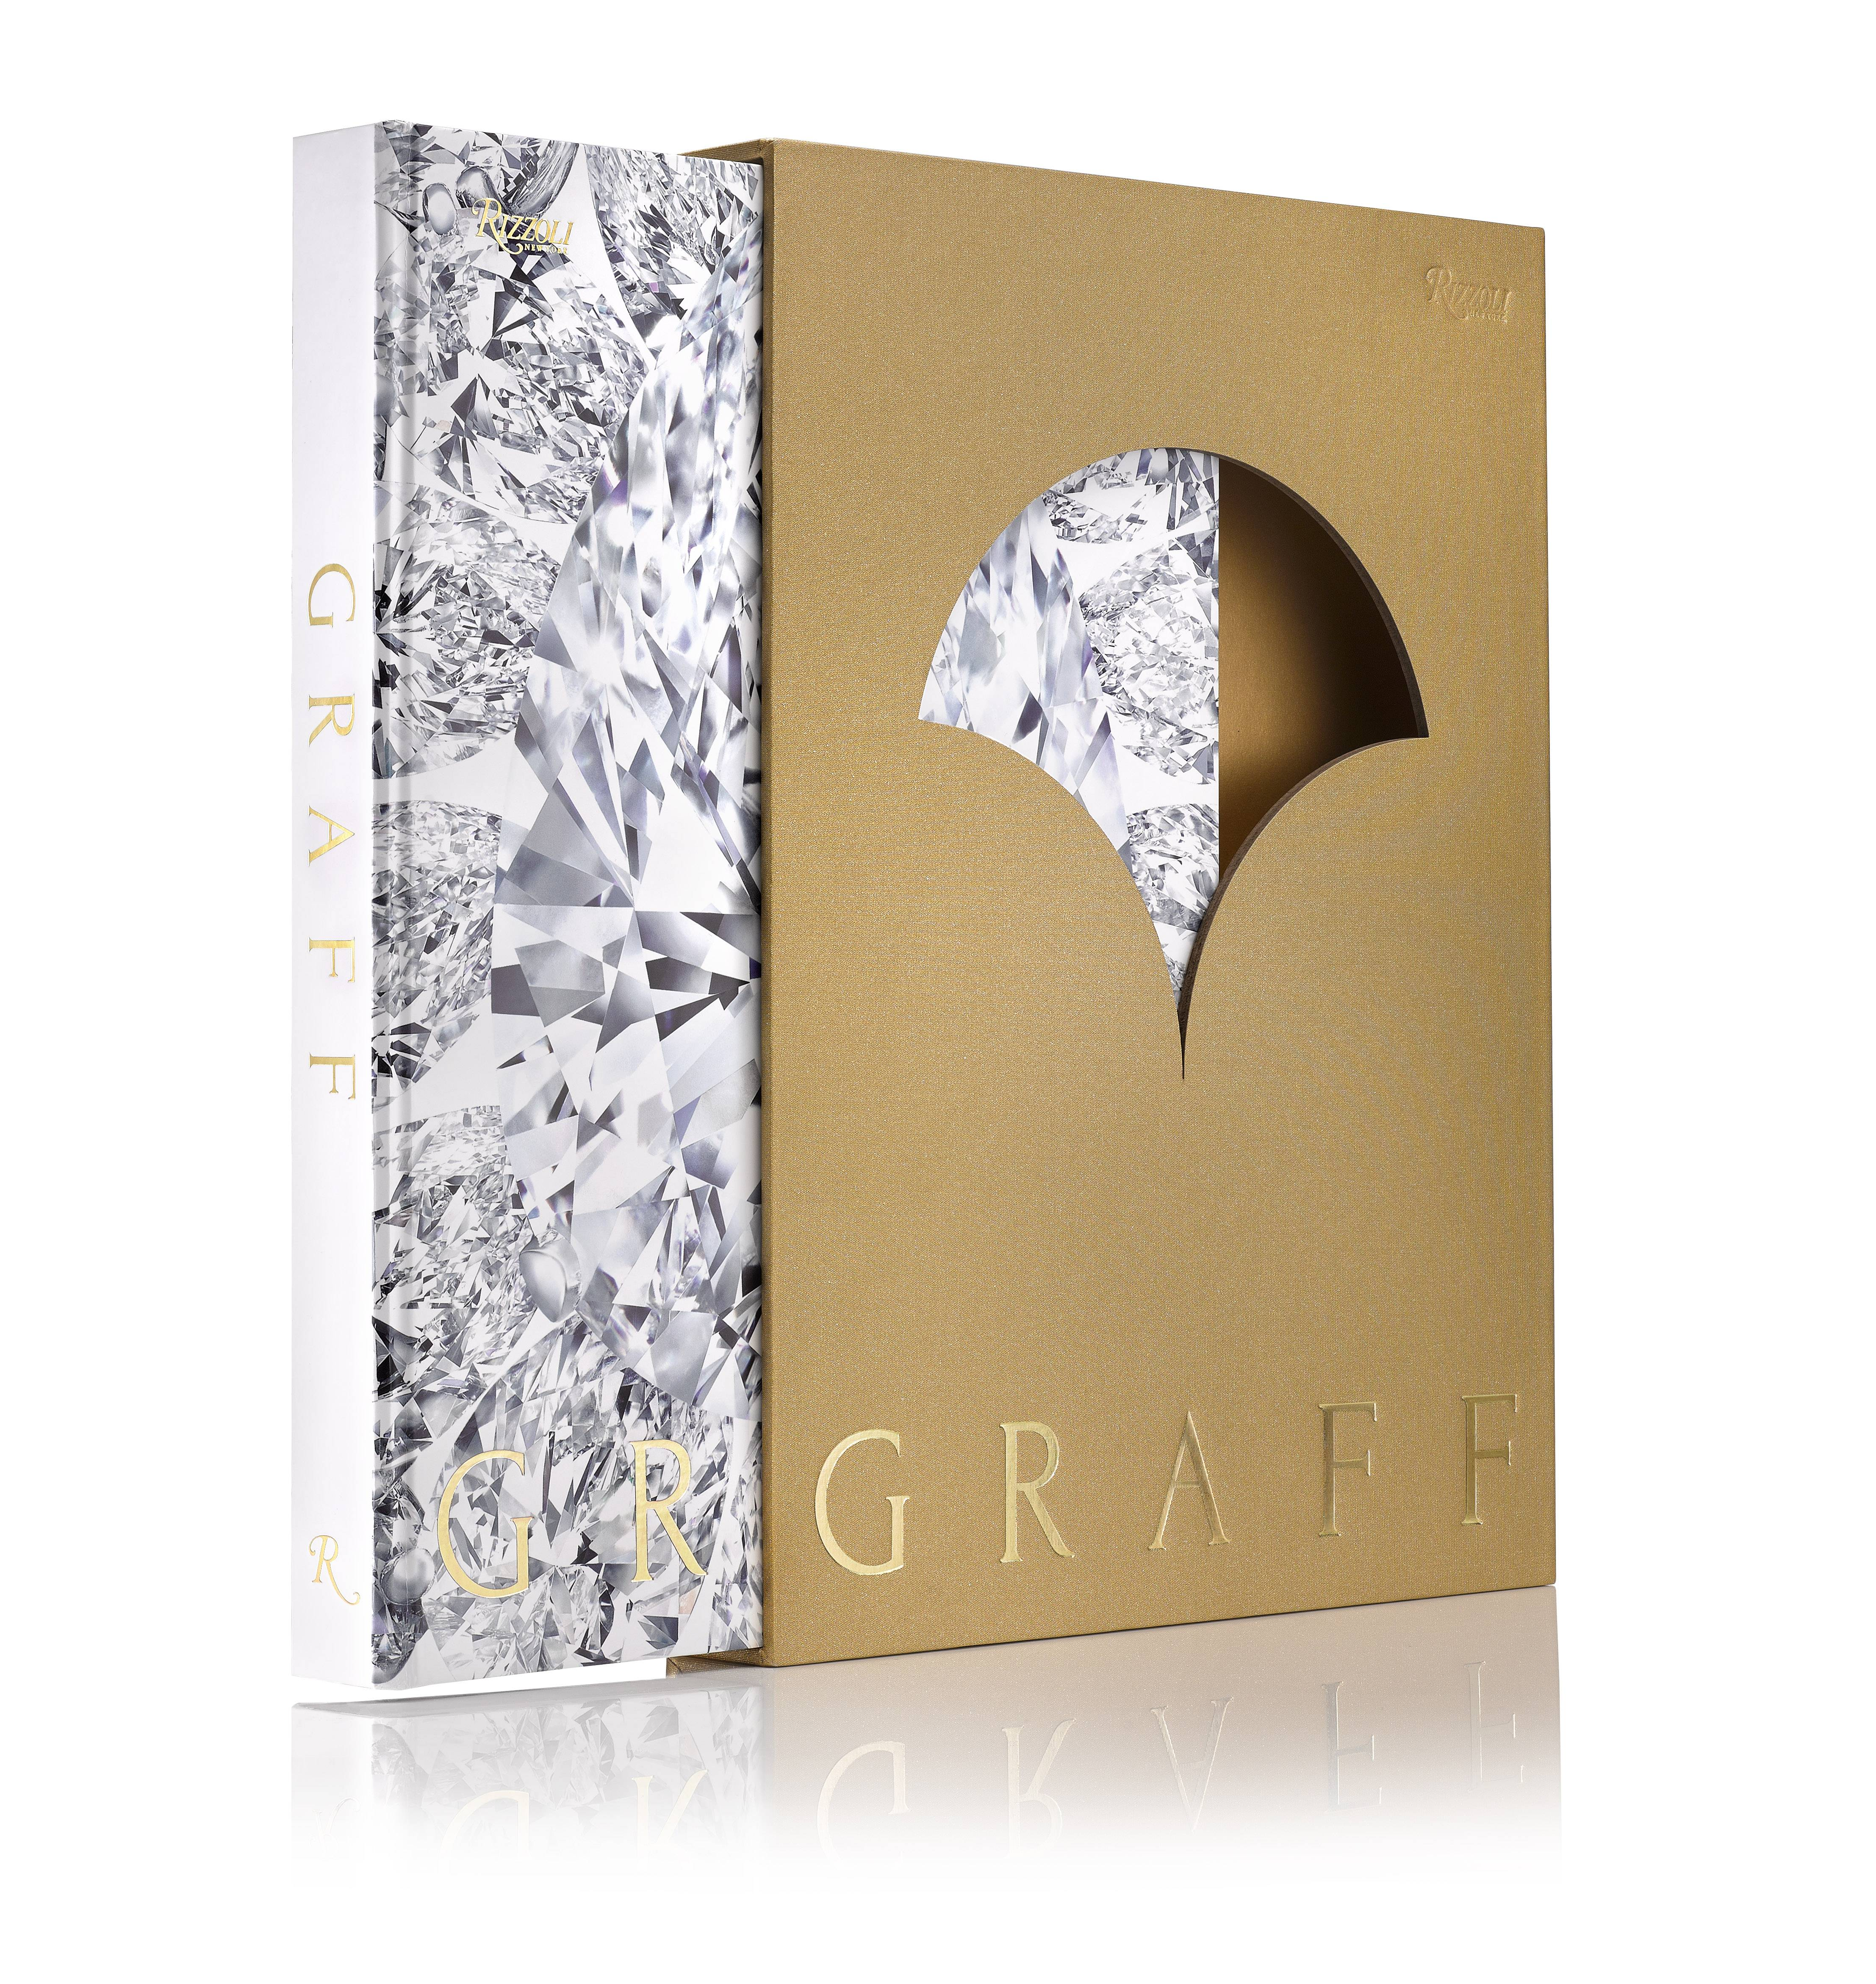 Graff Coffee Table Book with Slipcase